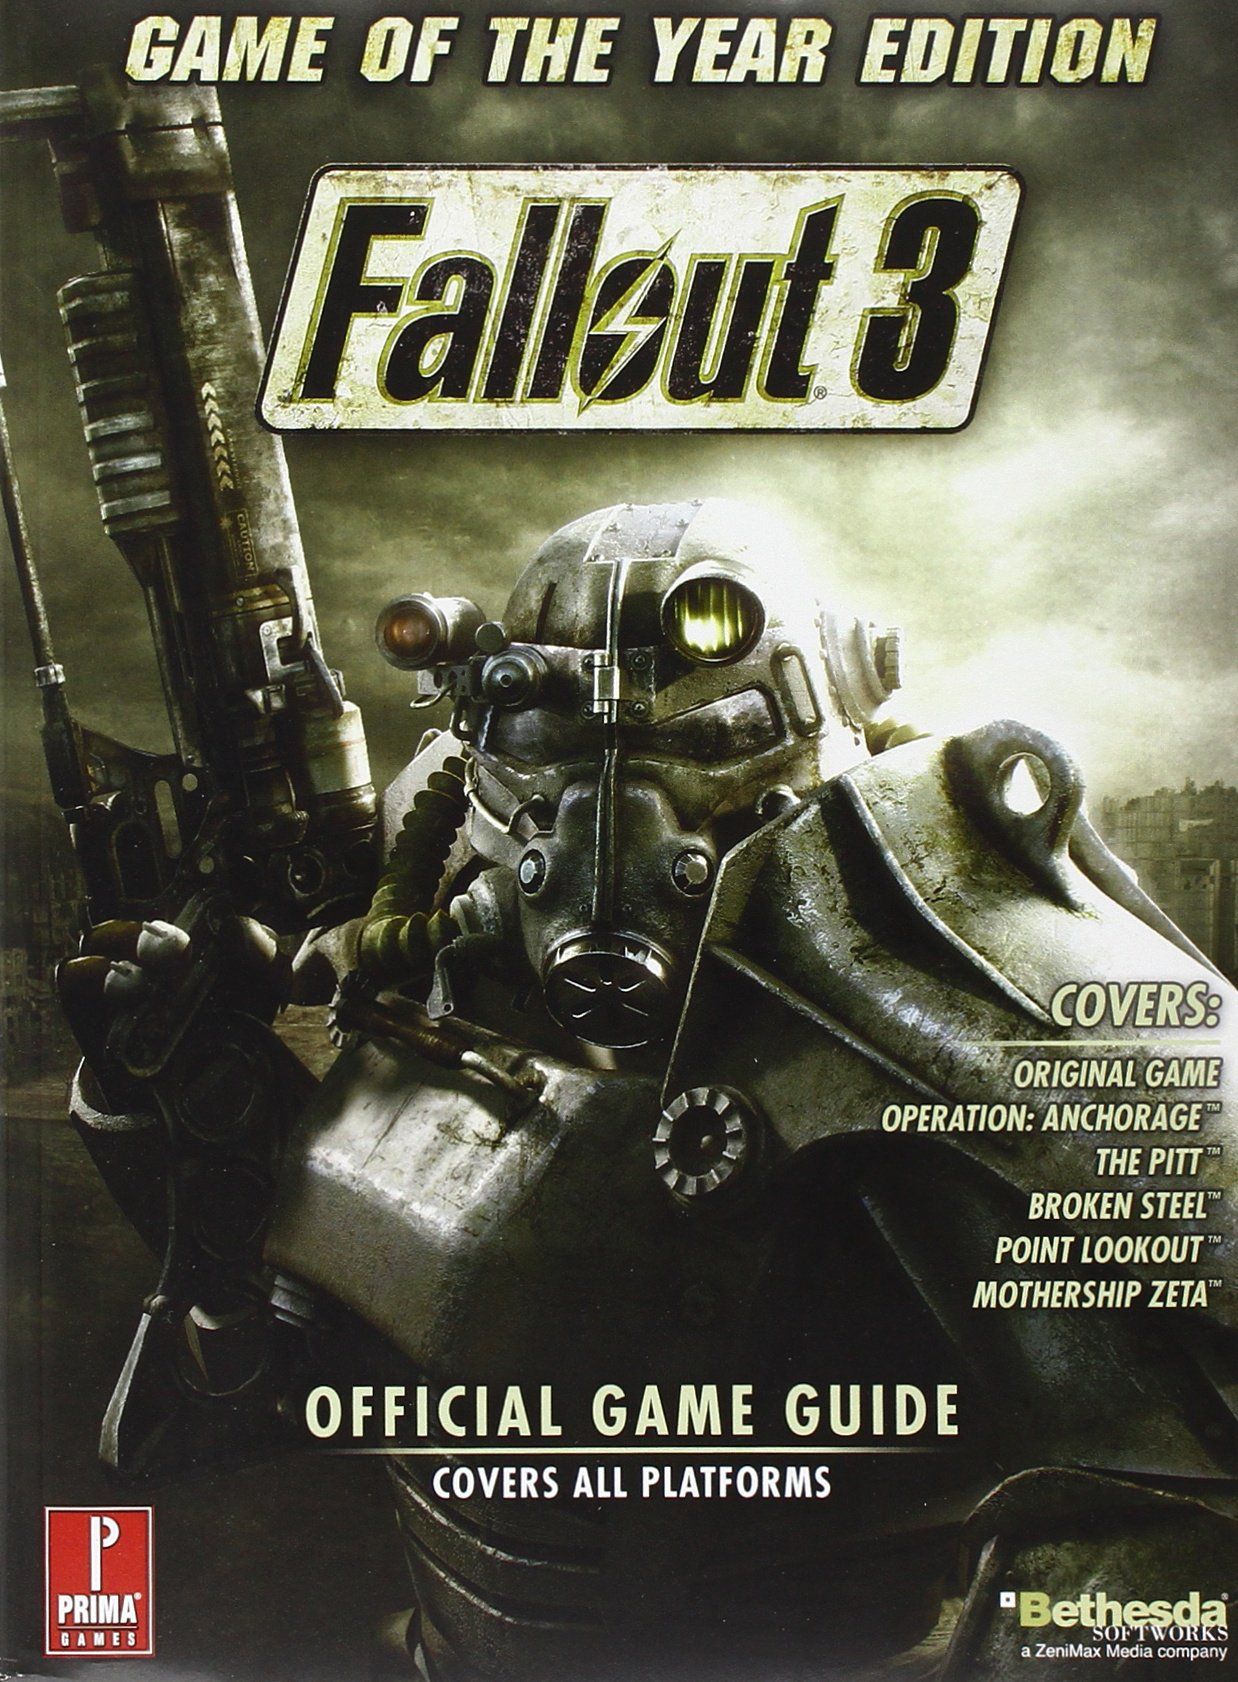 fallout 3 game of the year edition prima official game guide rh amazon com fallout 4 game guide for sale fallout 4 game guide for sale